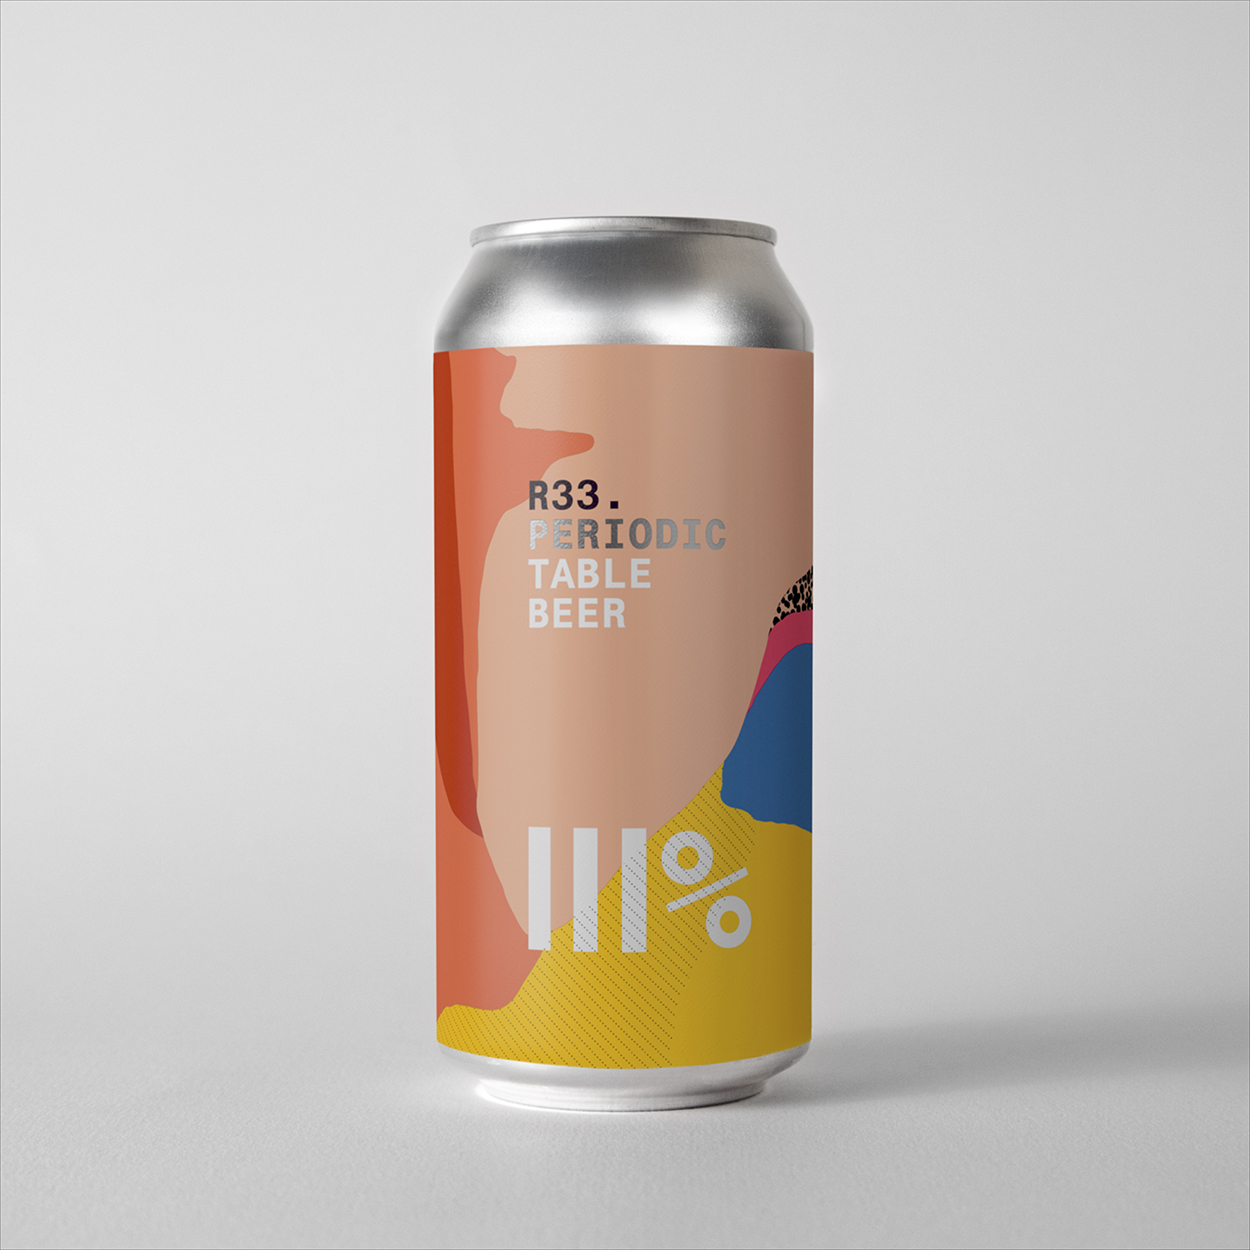 R33. Periodic Table Beer